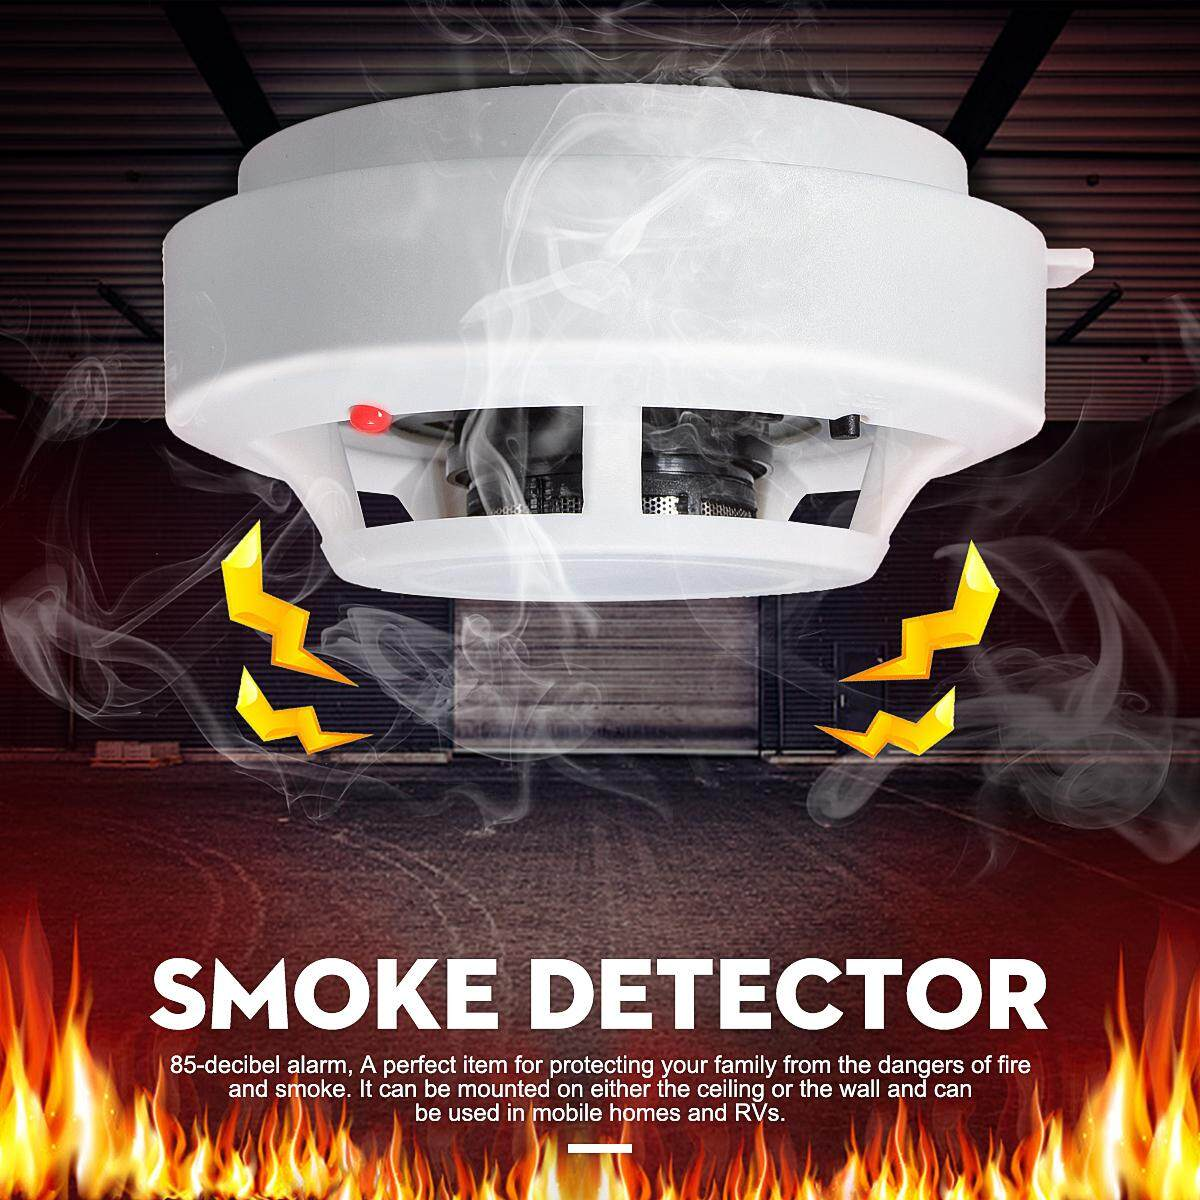 【Free Shipping + Super Deal + Limited Offer】Wireless Smoke Detector Home Security Fire Alarm Photoelectric Sensor System -- White